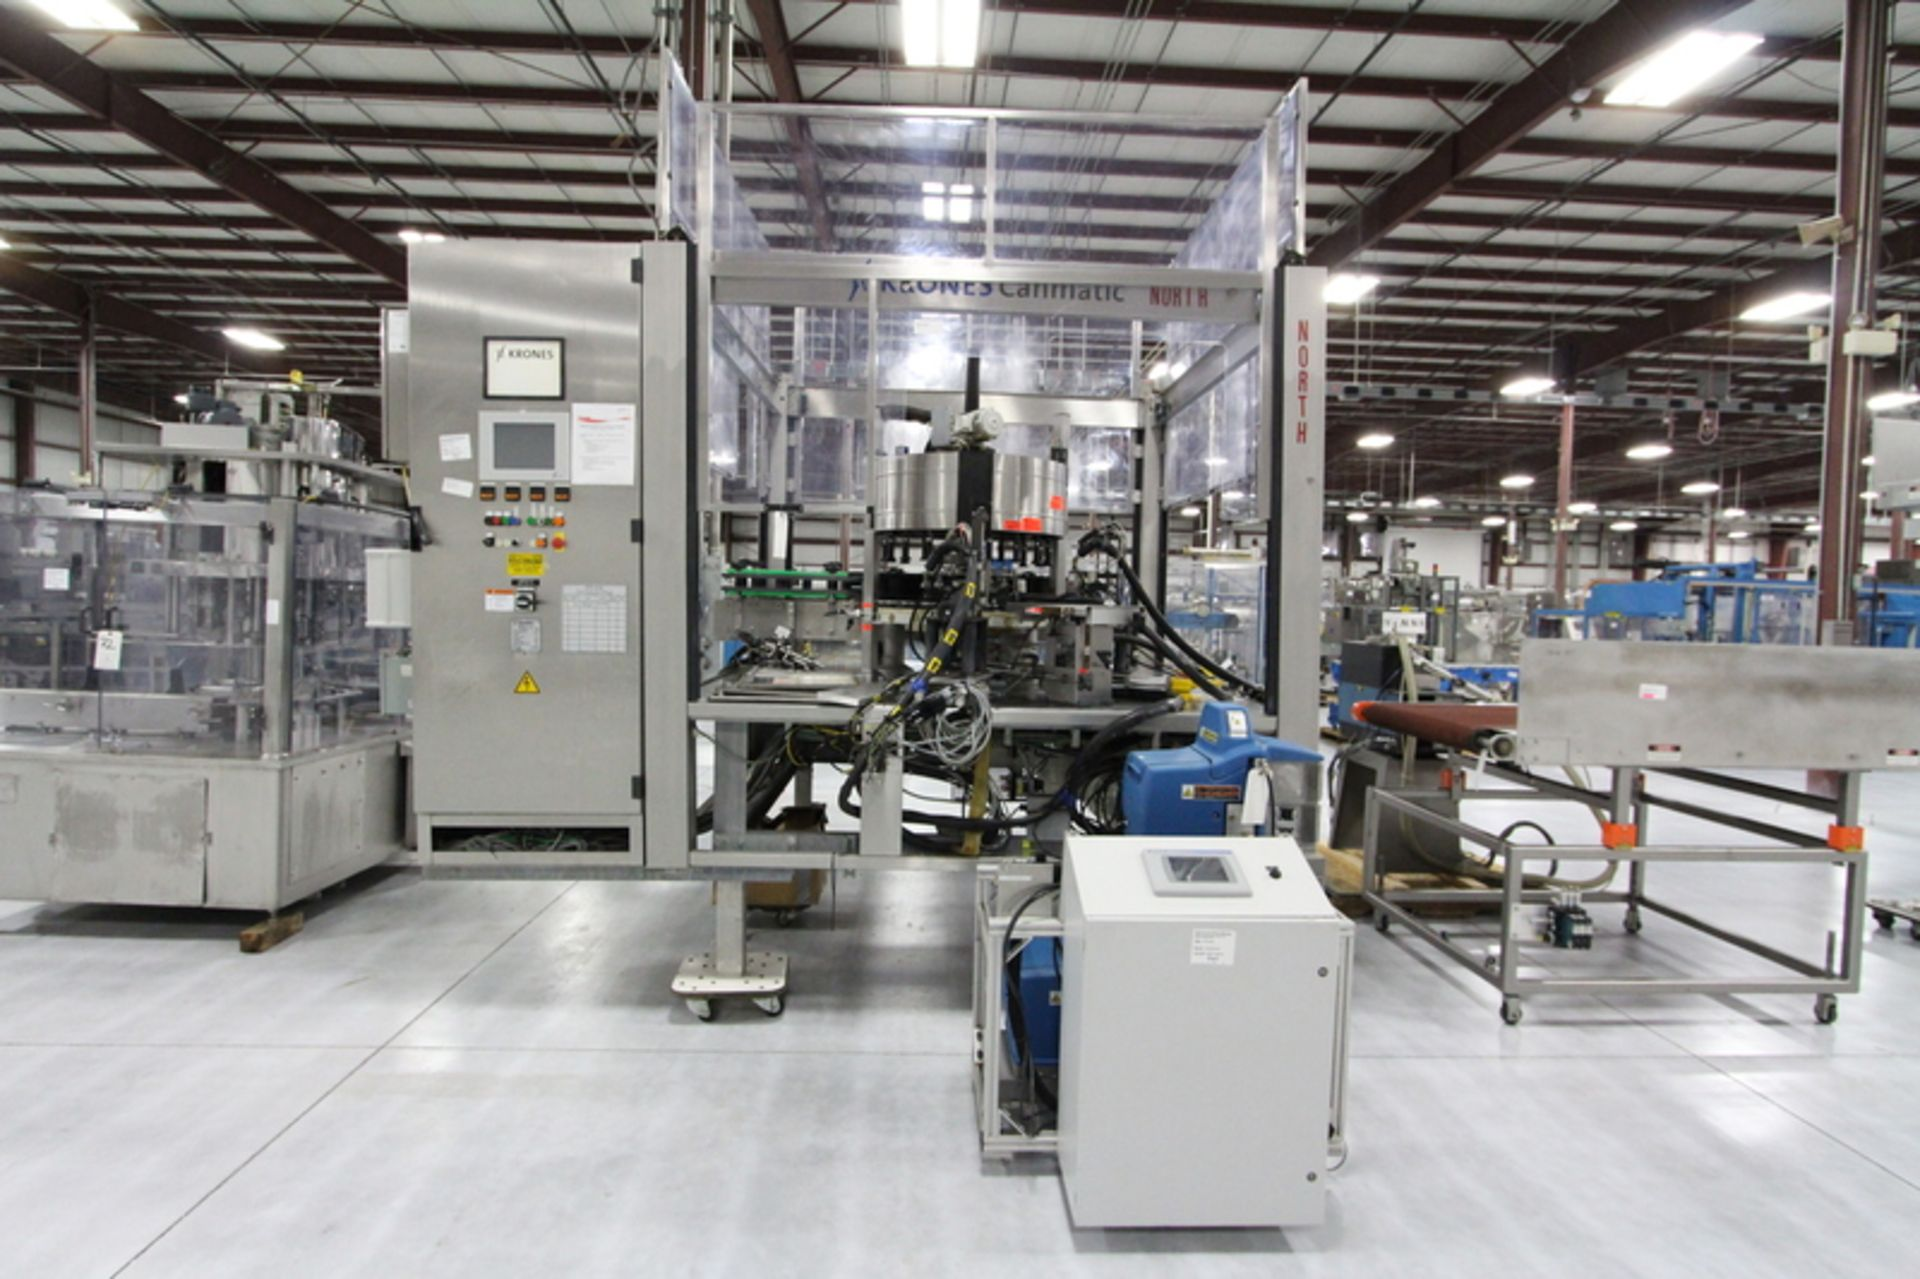 2003 Krones 18-Head Canmatic Wrap Around Rotary Labeler